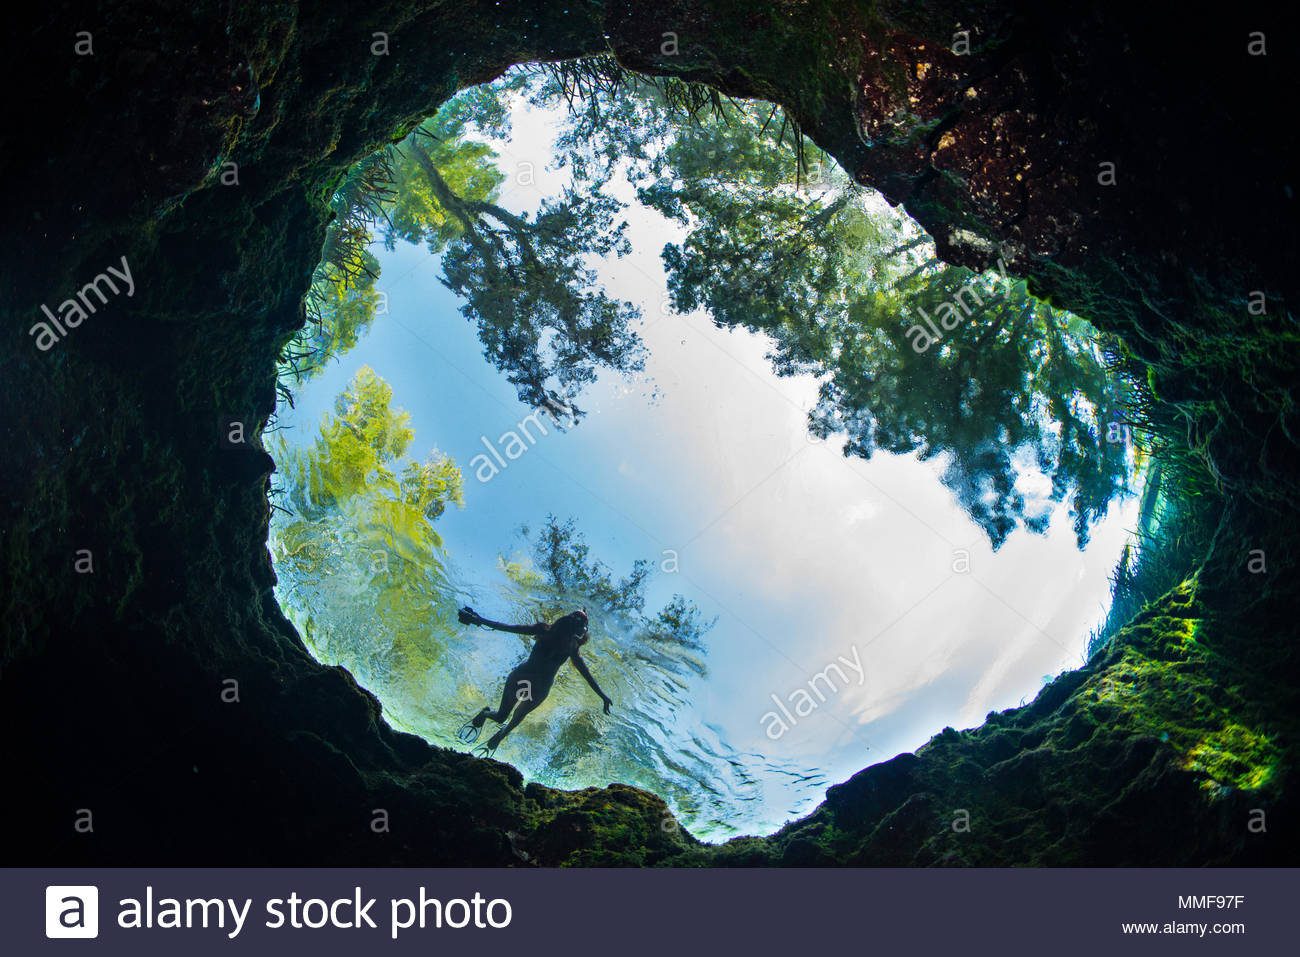 Looking up through the spring vent at Jug Hole as a silhouetted swimmer hovers. - Stock Image